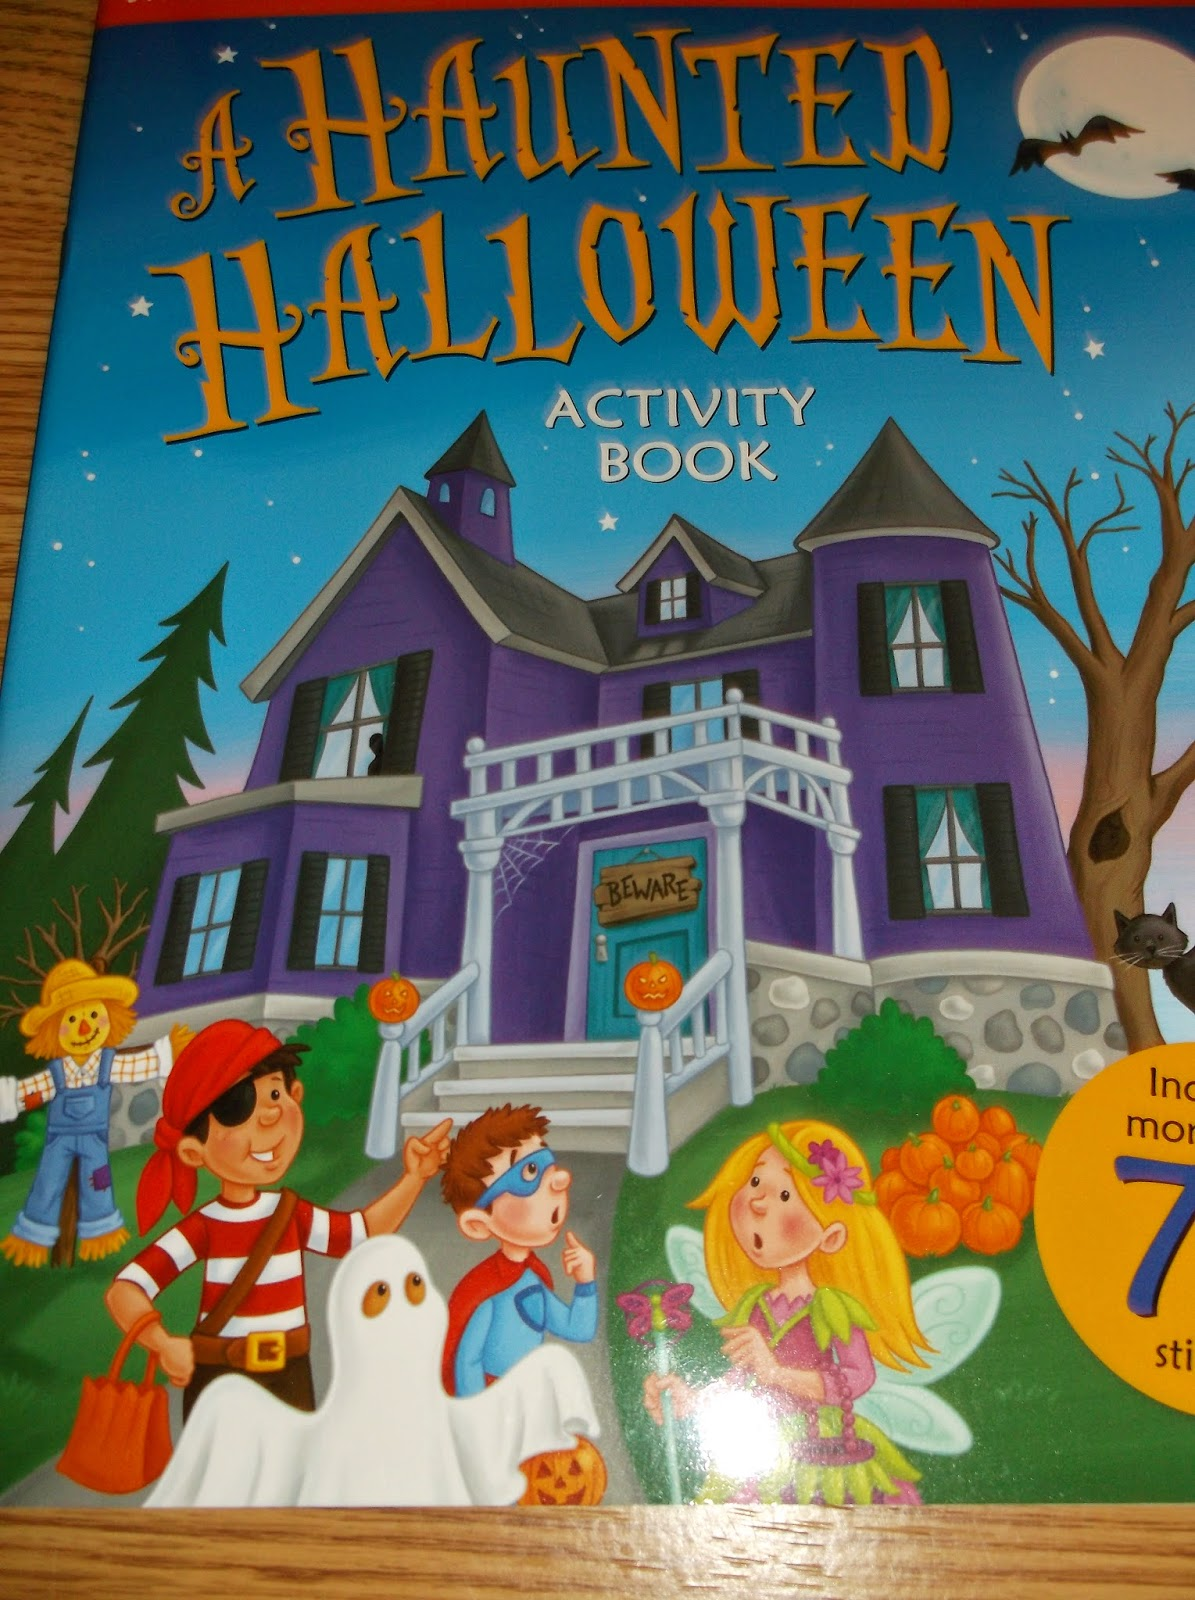 Missys Product Reviews A Haunted Halloween Activity Book By Peggy Schaefer And Illustrated By